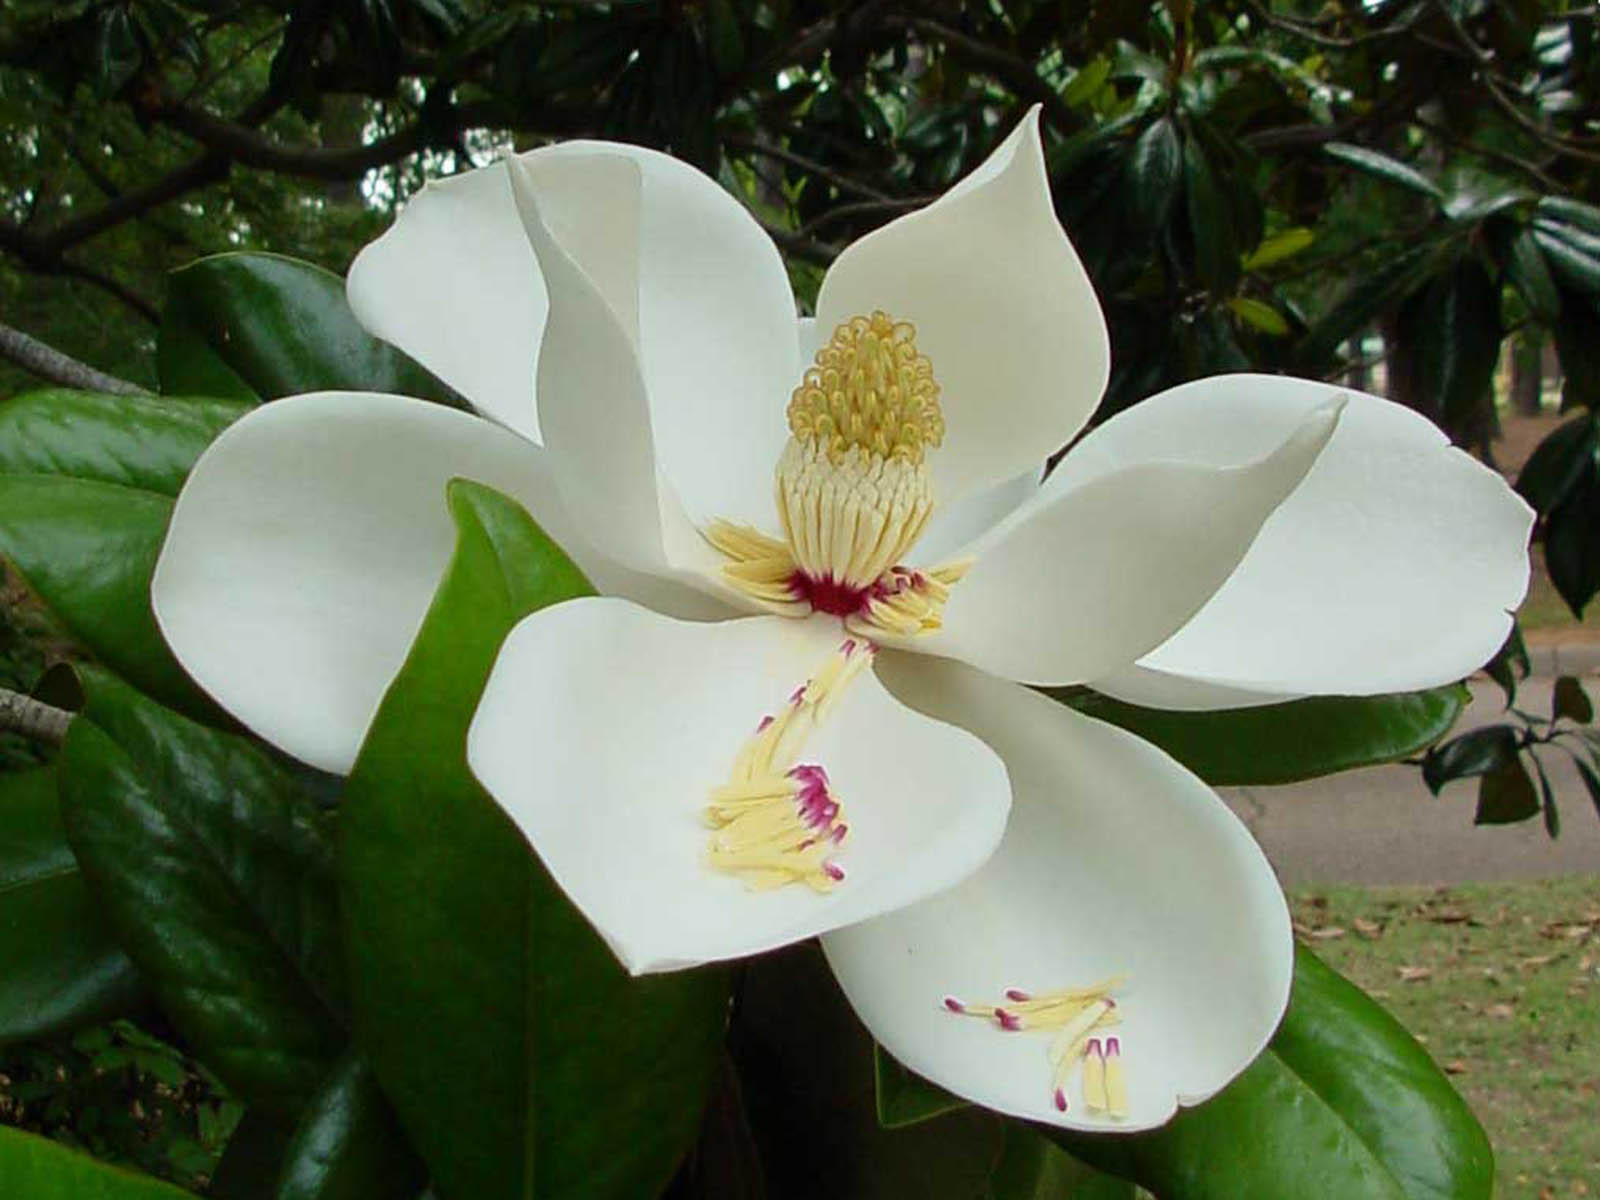 Wallpaper southern magnolia flower wallpapers - Magnolia background ...